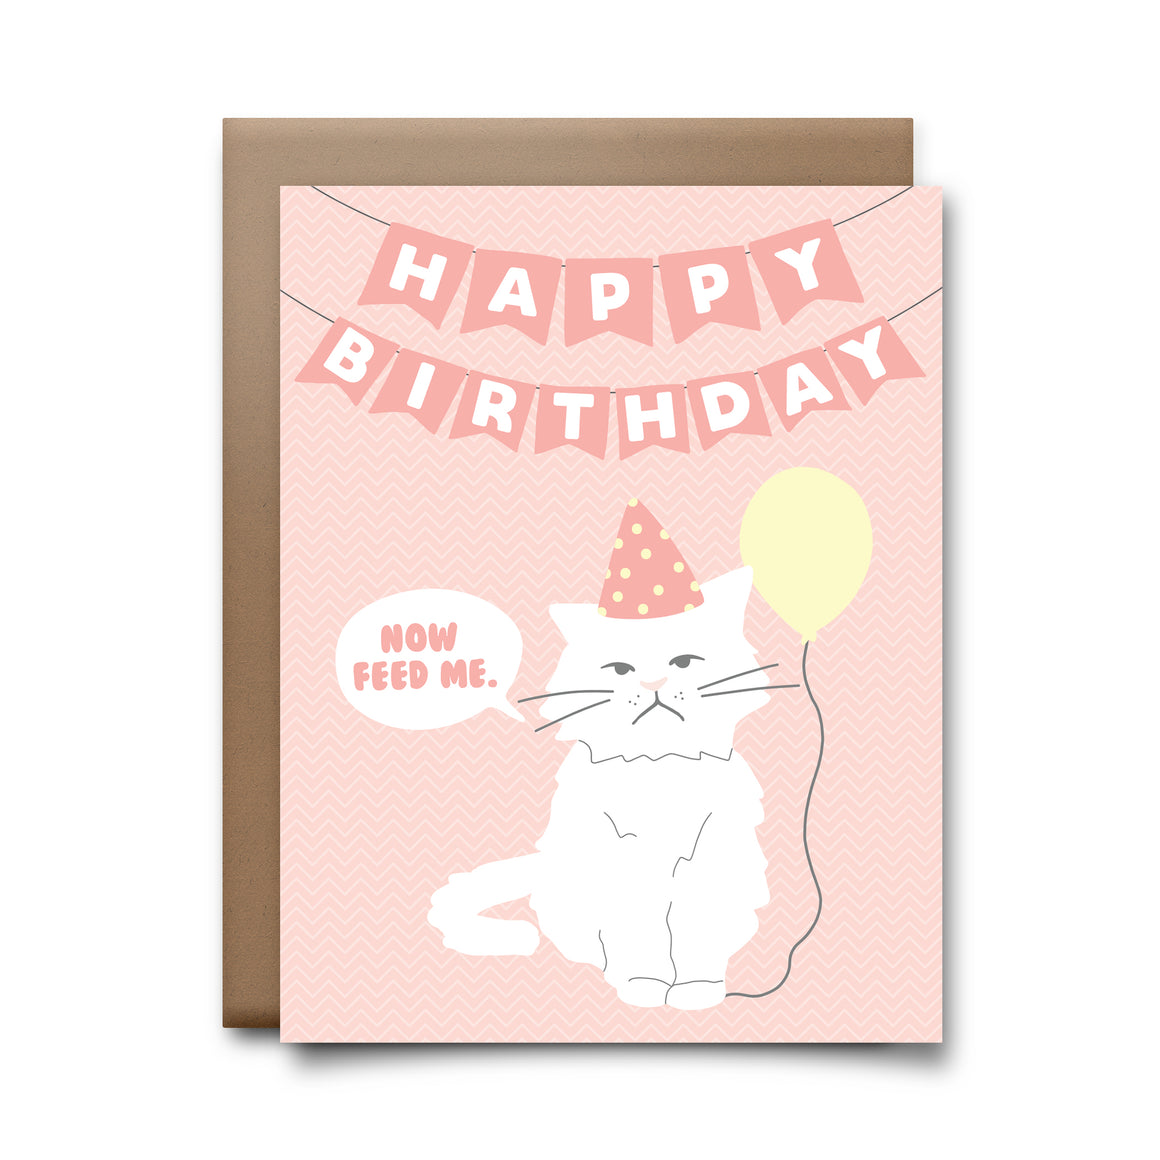 hbd feed me cat | greeting card